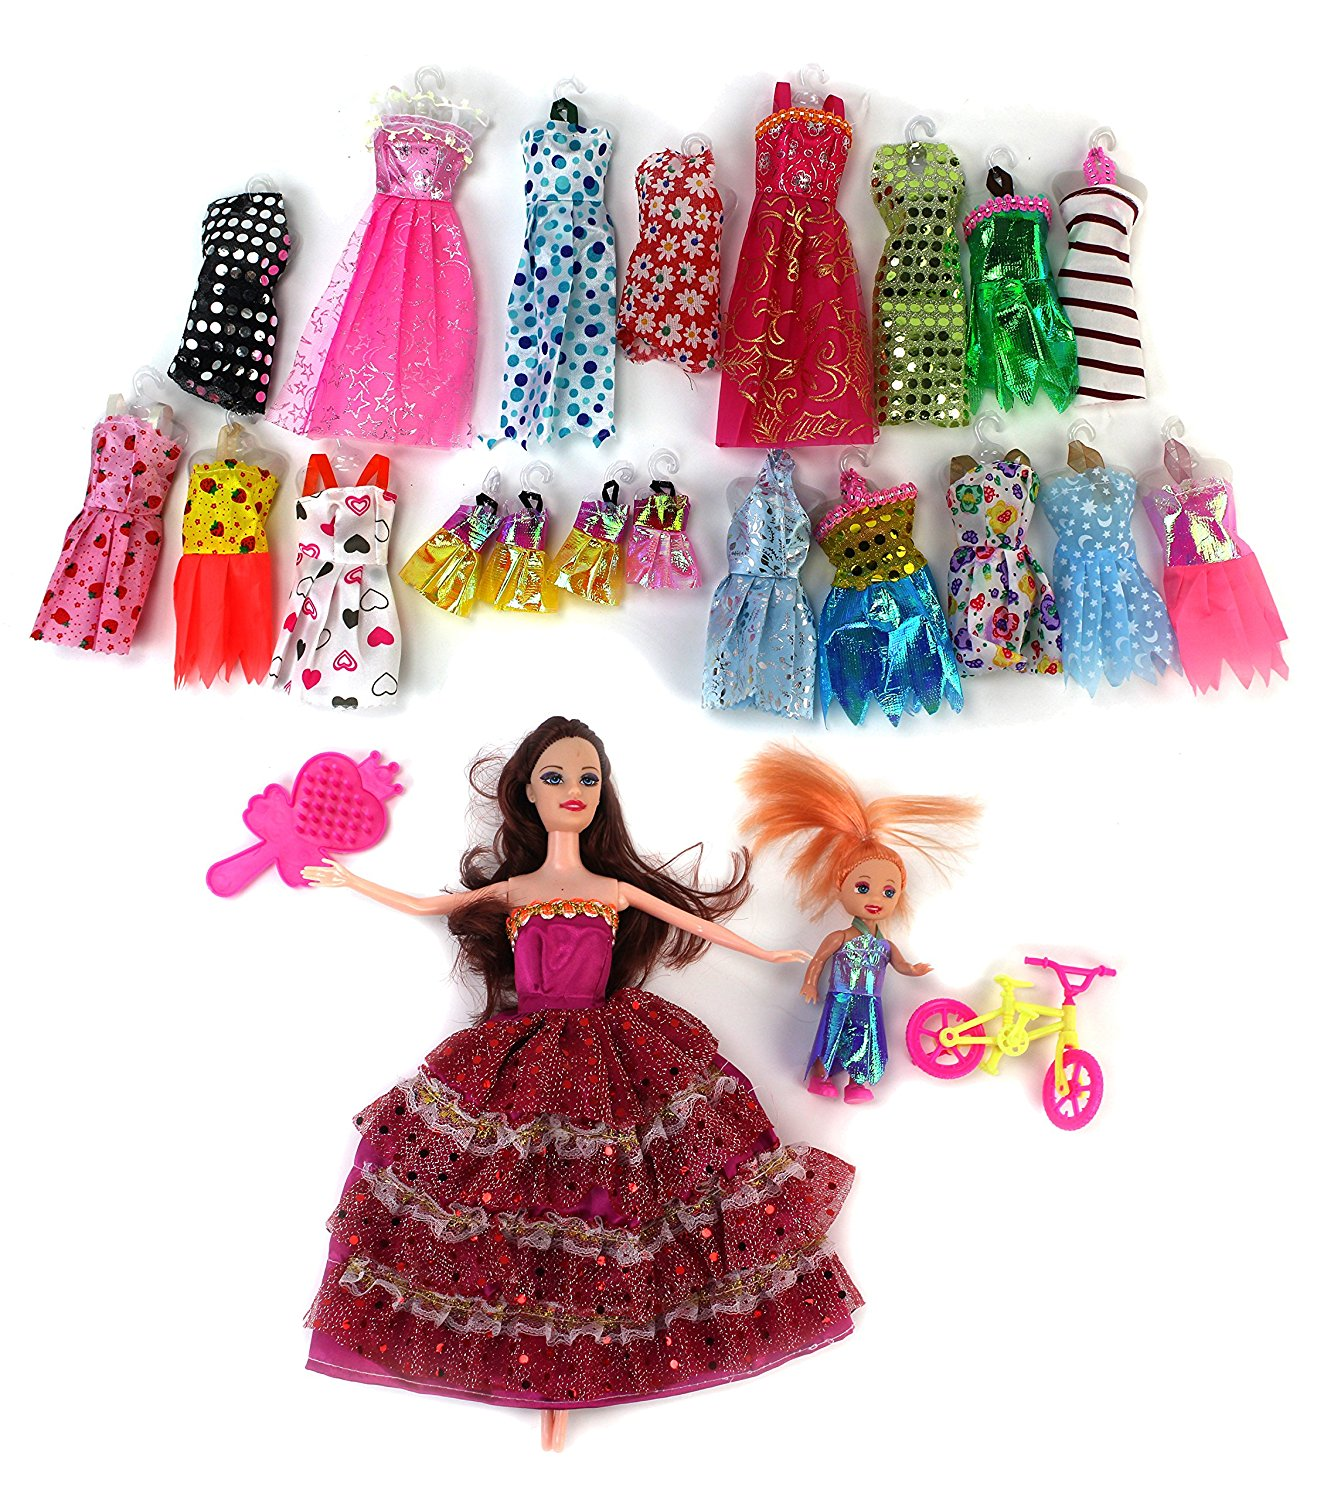 Madilynn Beauty Fashion Girl Kid's Toy Doll Fashion Variety Set w/ 2 Dolls, 18 Different Outfits , & Accessories